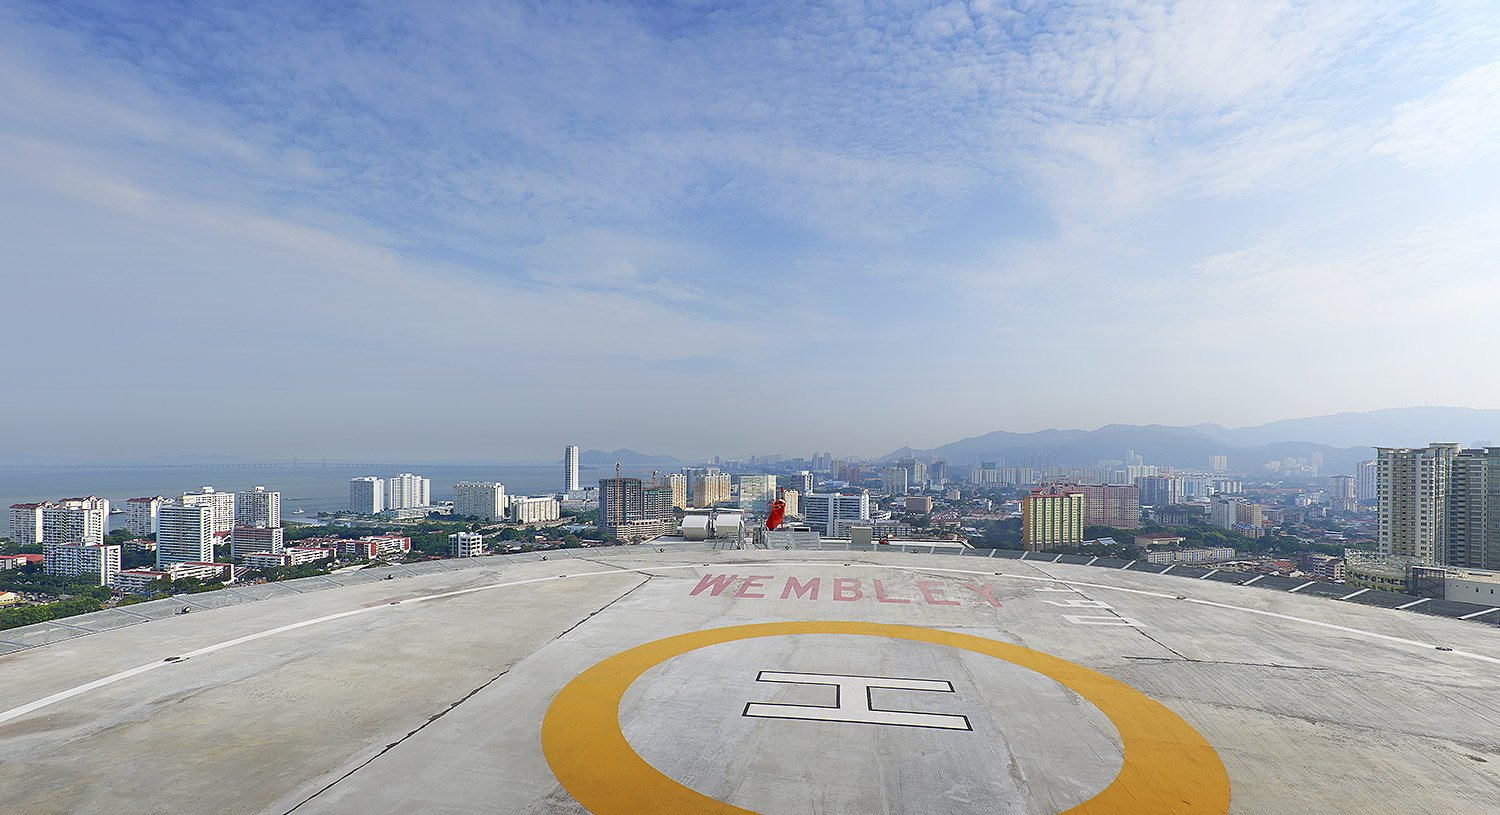 View from the The Wembley Penang helipad